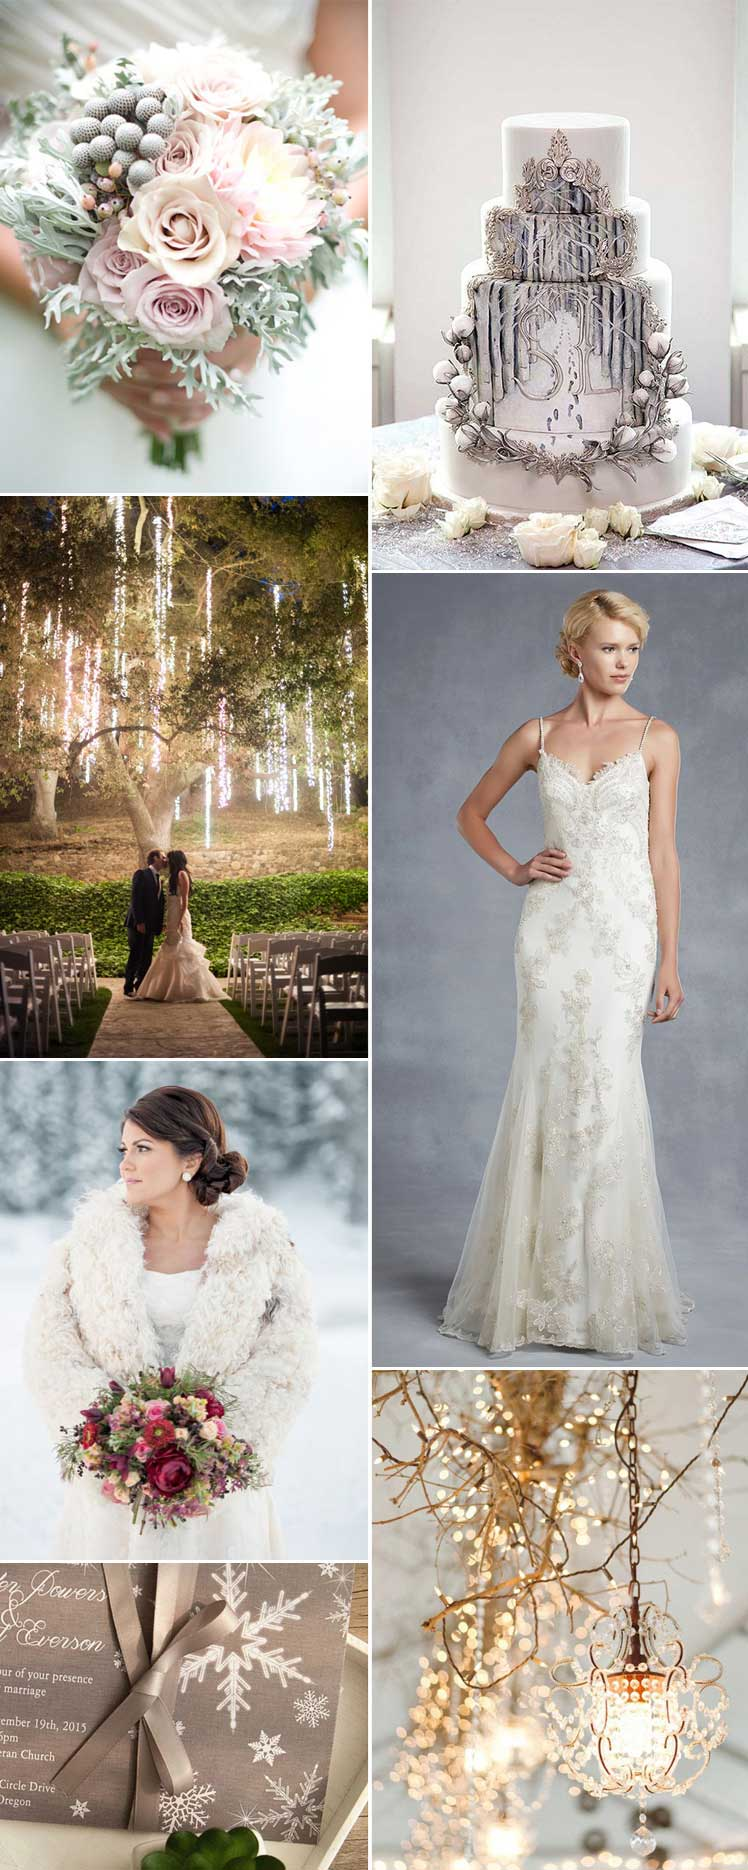 Winter wonderland magical wedding inspiration